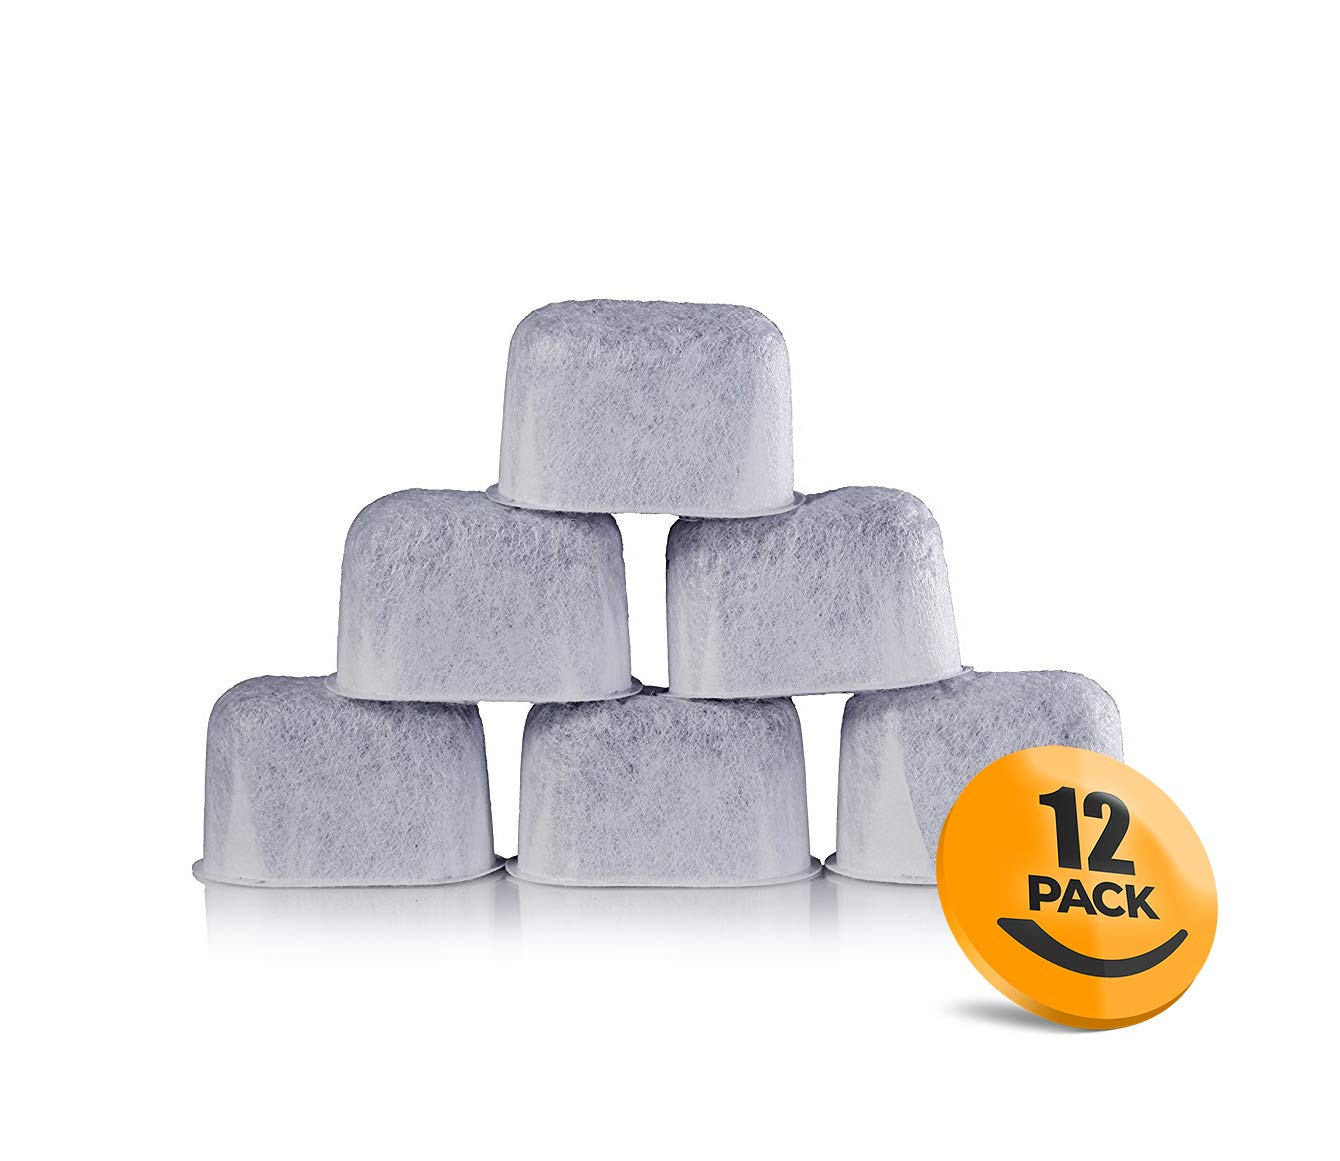 K&J 12-Pack of Cuisinart Compatible Replacement Charcoal Water Filters for Coffee Makers – Fits all Cuisinart Coffee Makers